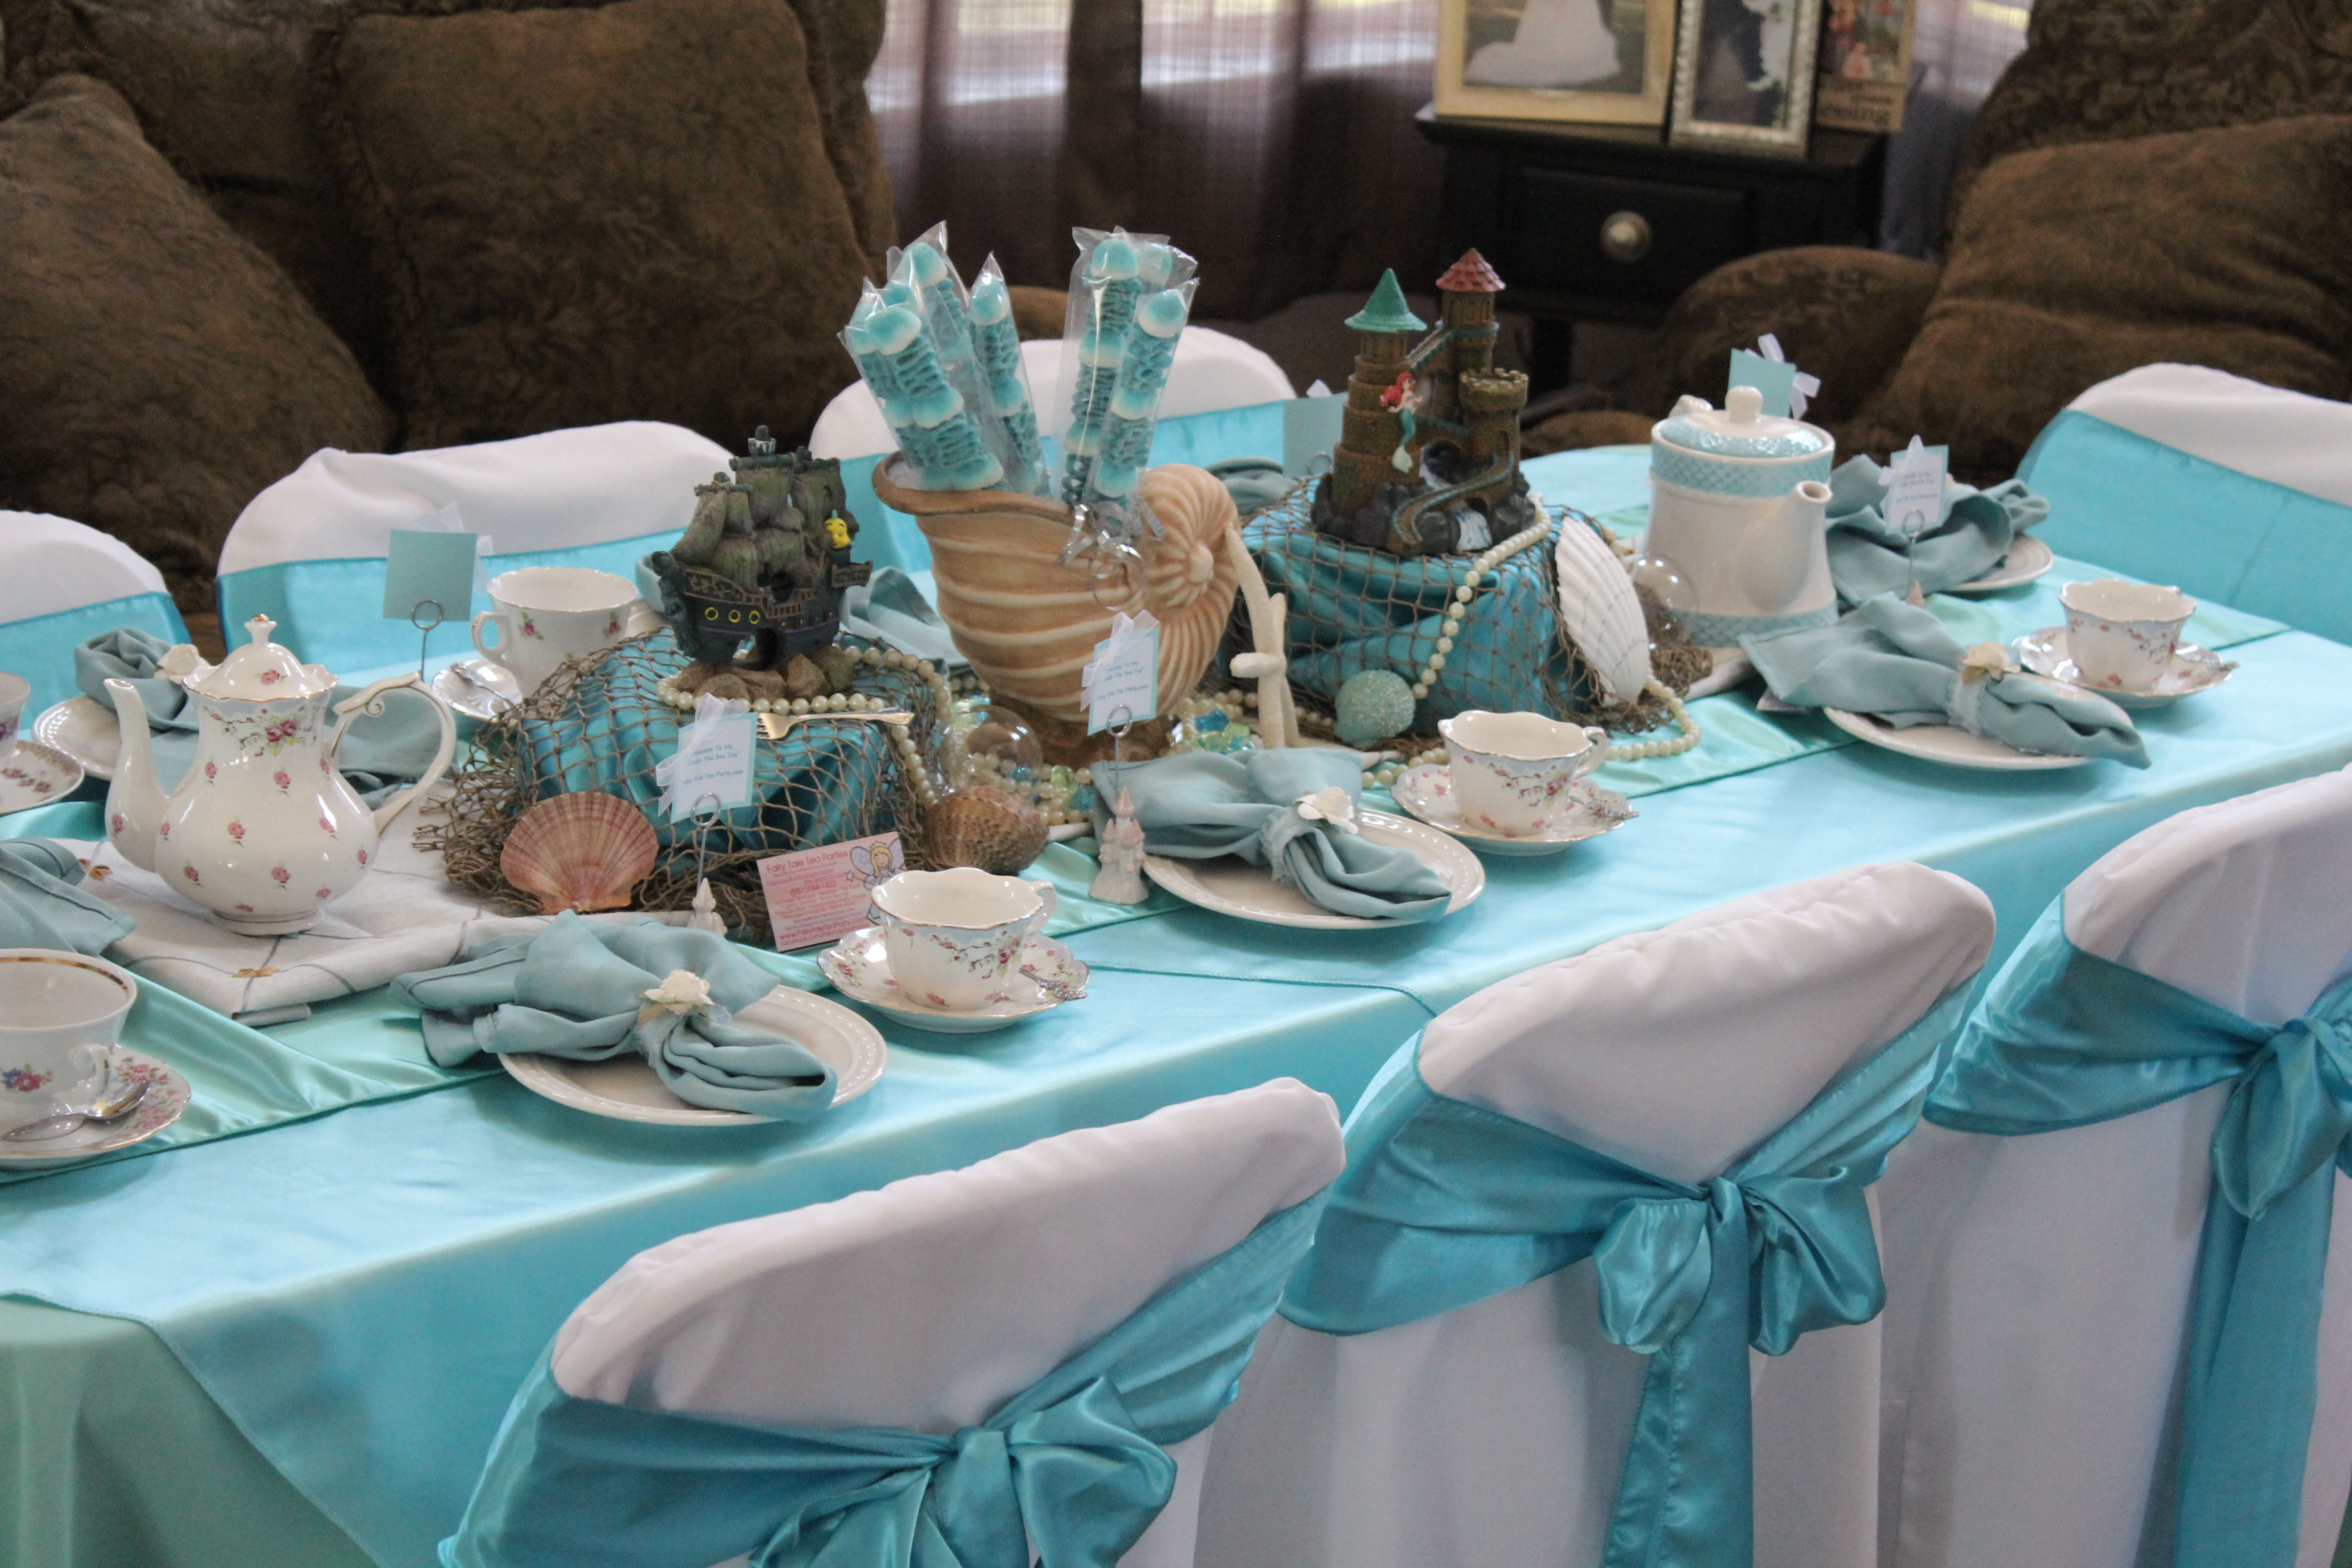 Little Mermaid centerpiece and table set up. Under the Sea theme ...